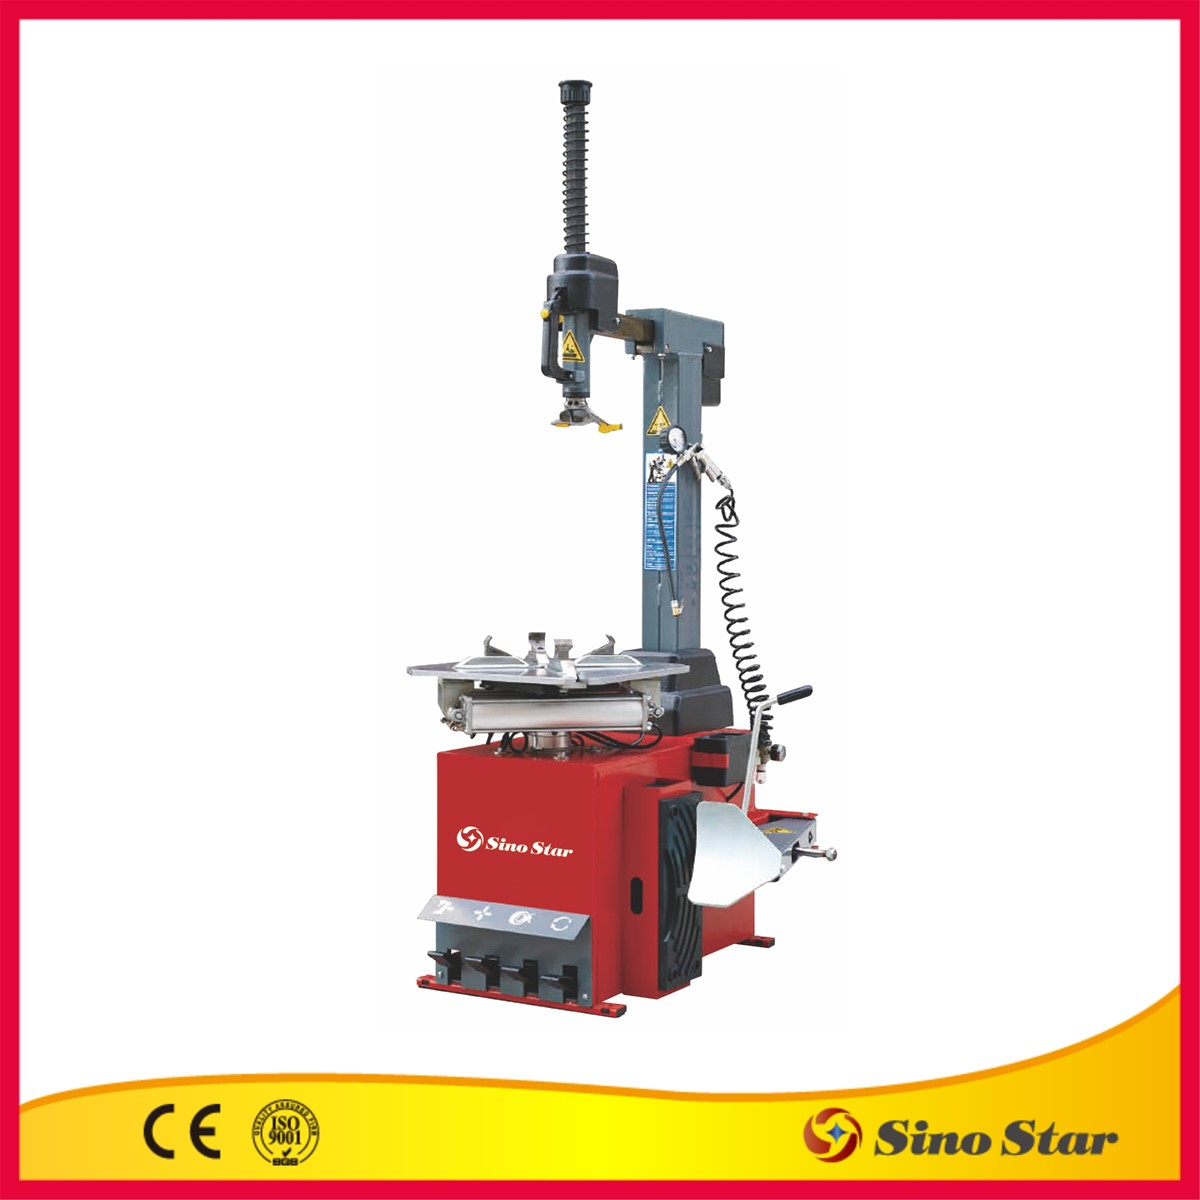 europe tire changing machine ss 4990  purchasing  souring agent ecvv com purchasing service Manual Bead Breaker Tire Changing Machine manual tire changing machine